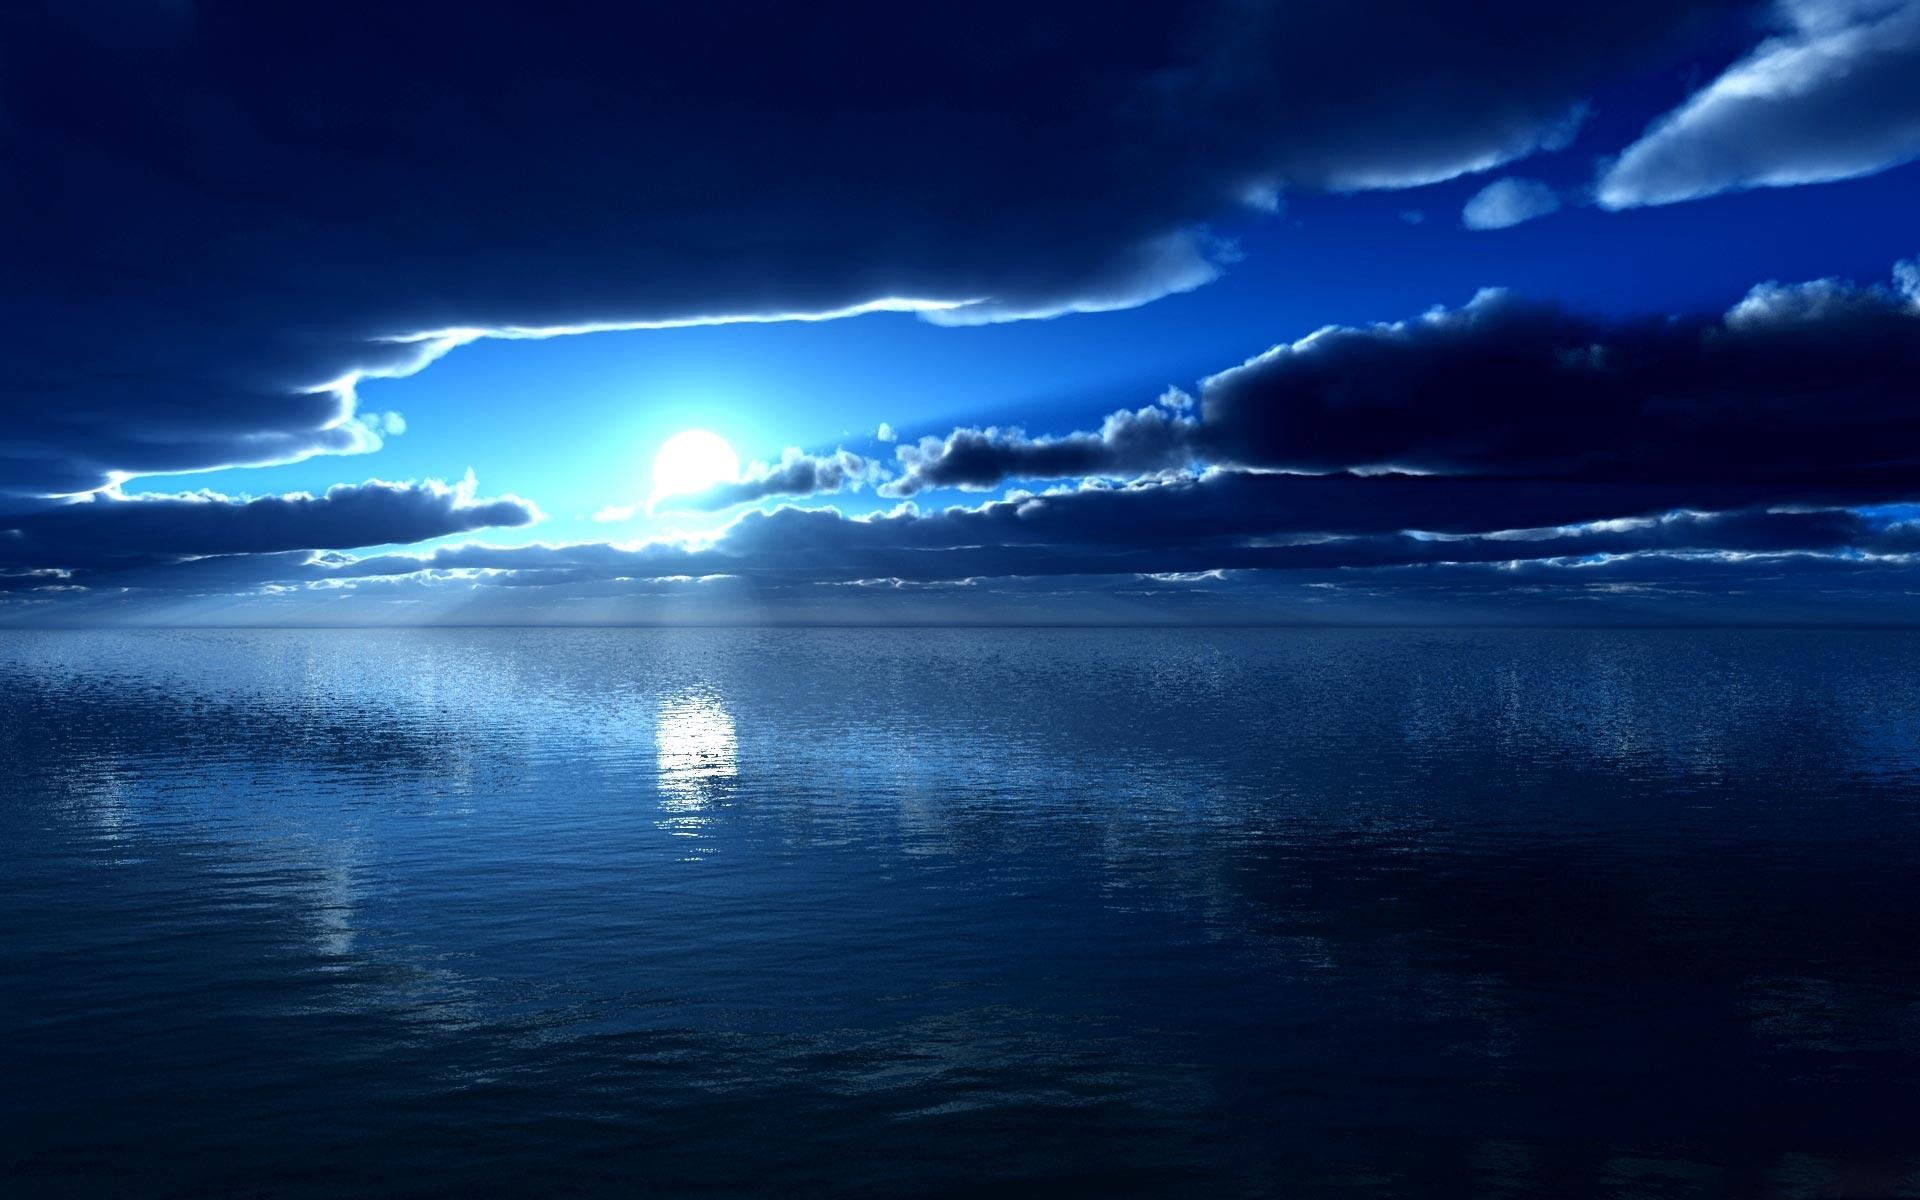 1920x1200 Sky And River Relax Desktop Backgrounds Hd Wallpaper